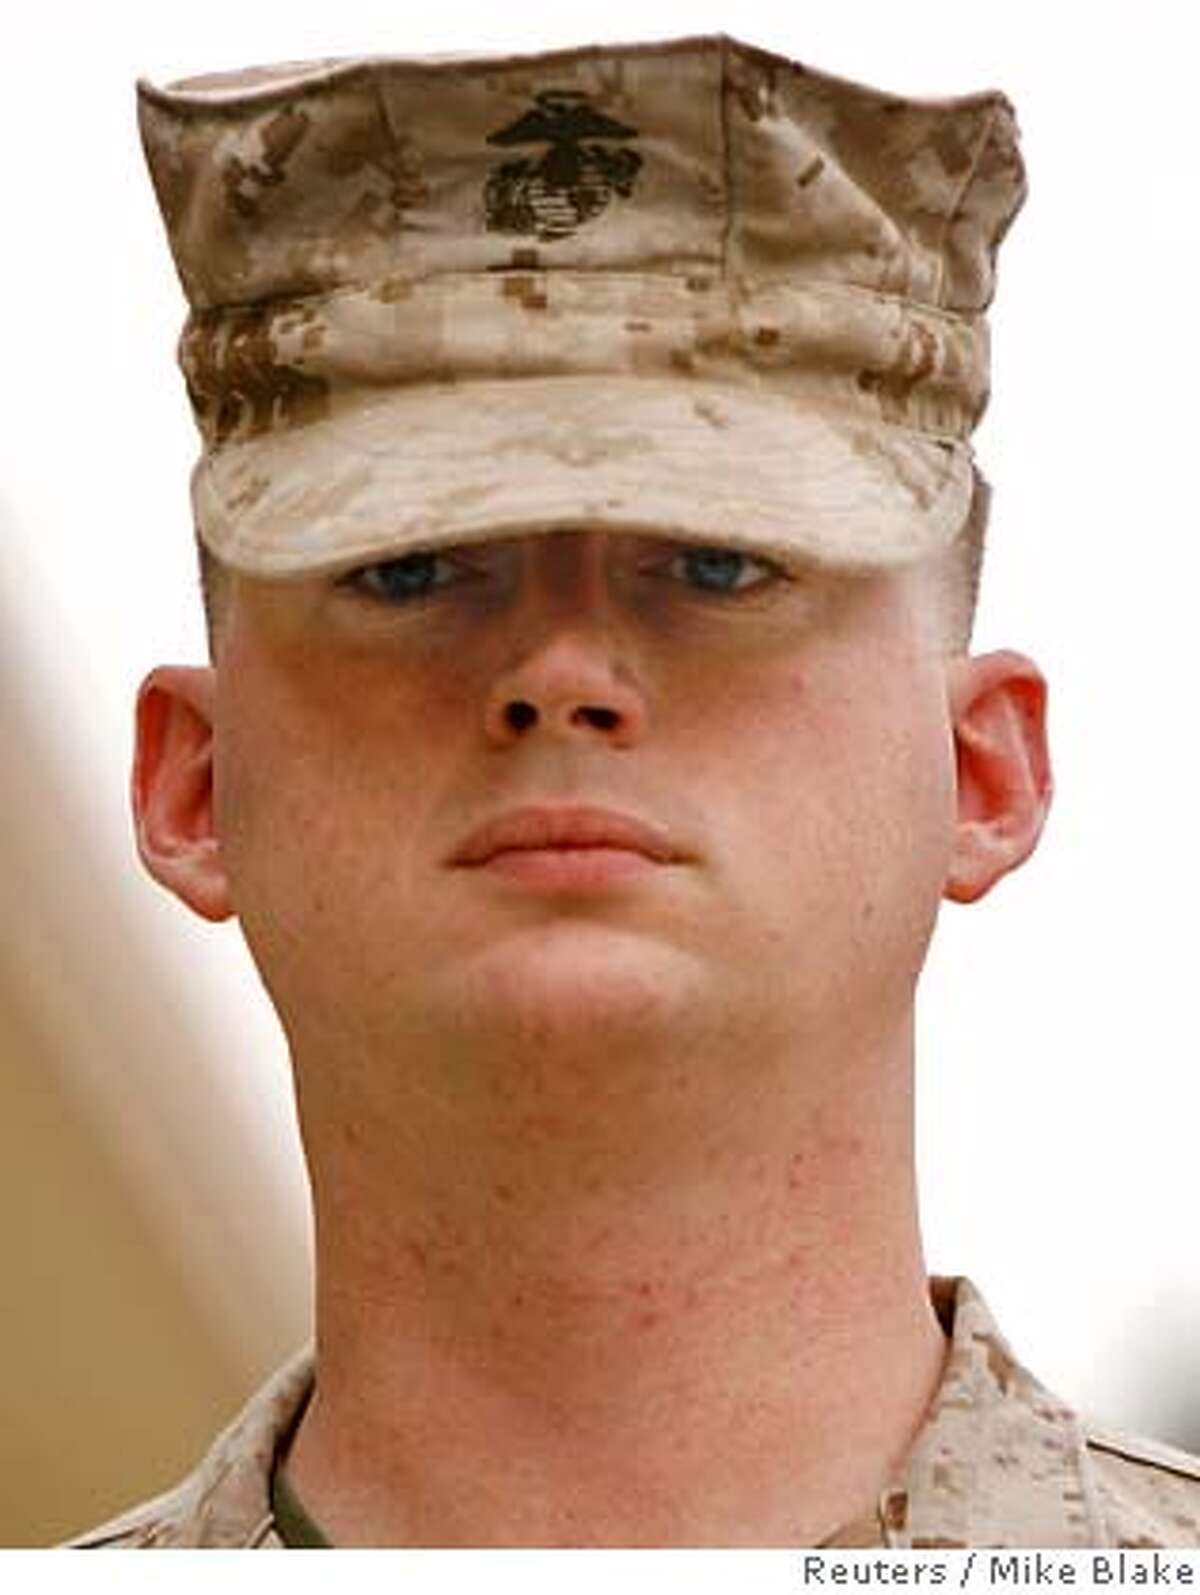 ###Live Caption:Lance Corporal Stephen B. Tatum arrives for his Article 32 hearing of the Haditha investigation at U.S. Marine Corps Camp Pendleton, California in this July 16, 2007 file photo. Charges were dismissed on March 28, 2008 against Tatum, accused of involuntary manslaughter and aggravated assault in the 2005 shooting deaths of two dozen unarmed Iraqi civilians at Haditha REUTERS/Mike Blake/Files (UNITED STATES)###Caption History:Lance Corporal Stephen B. Tatum arrives for his Article 32 hearing of the Haditha investigation at U.S. Marine Corps Camp Pendleton, California in this July 16, 2007 file photo. Charges were dismissed on March 28, 2008 against Tatum, accused of involuntary manslaughter and aggravated assault in the 2005 shooting deaths of two dozen unarmed Iraqi civilians at Haditha REUTERS/Mike Blake/Files (UNITED STATES)###Notes:File photo of Lance Corporal Tatum at US Marine Corps Camp Pendleton###Special Instructions:0